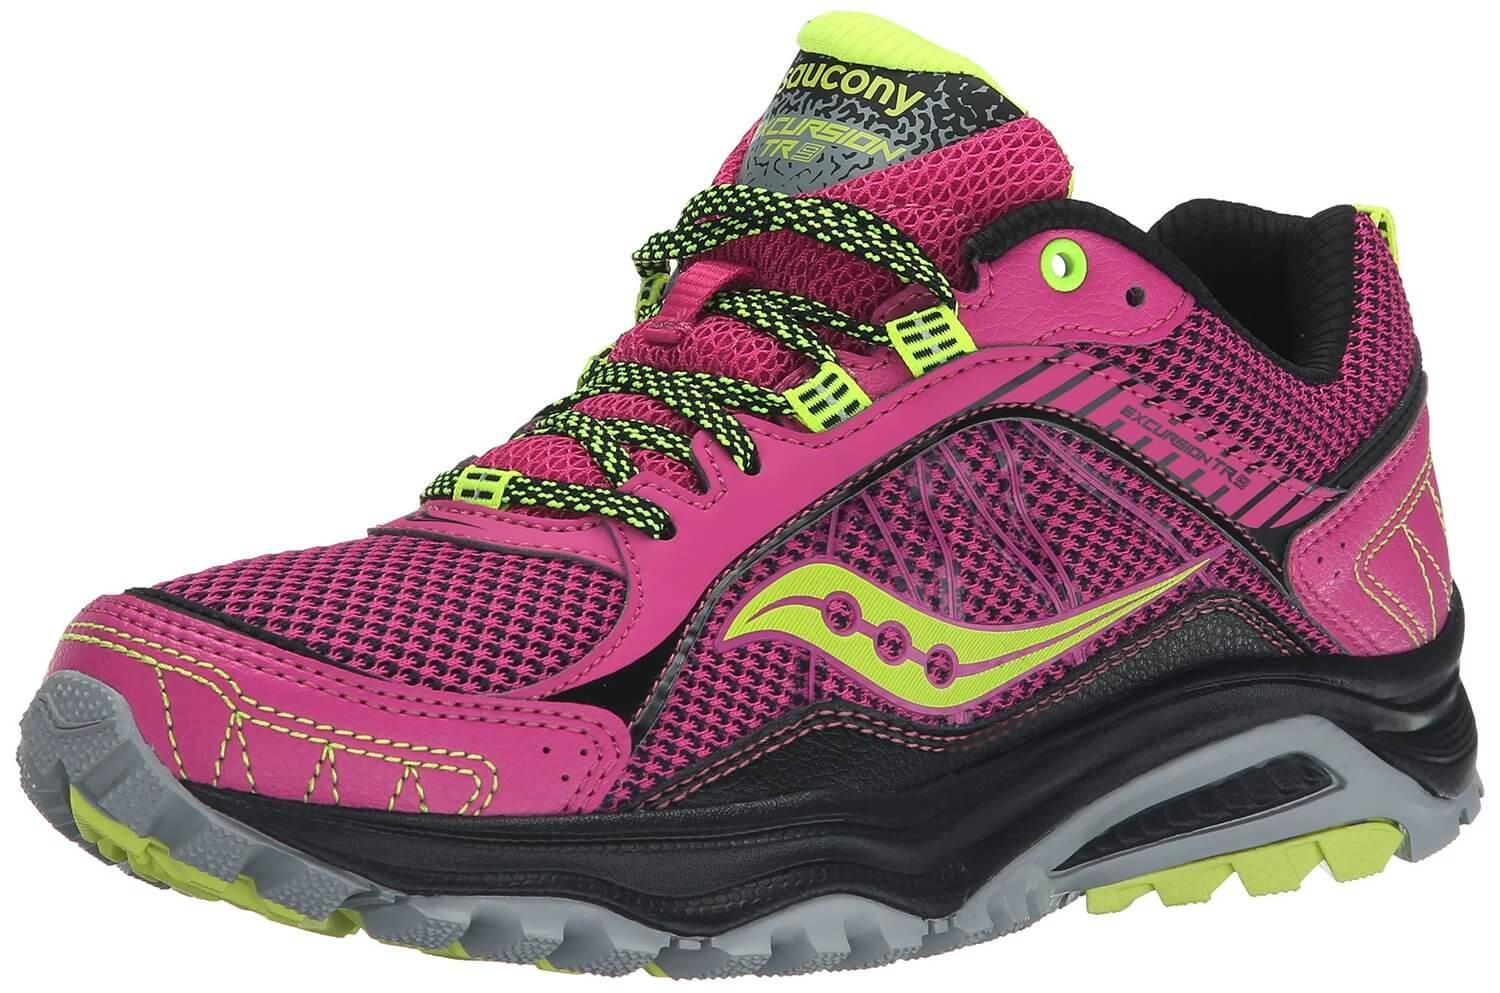 Saucony Excursion TR9 Fully Reviewed